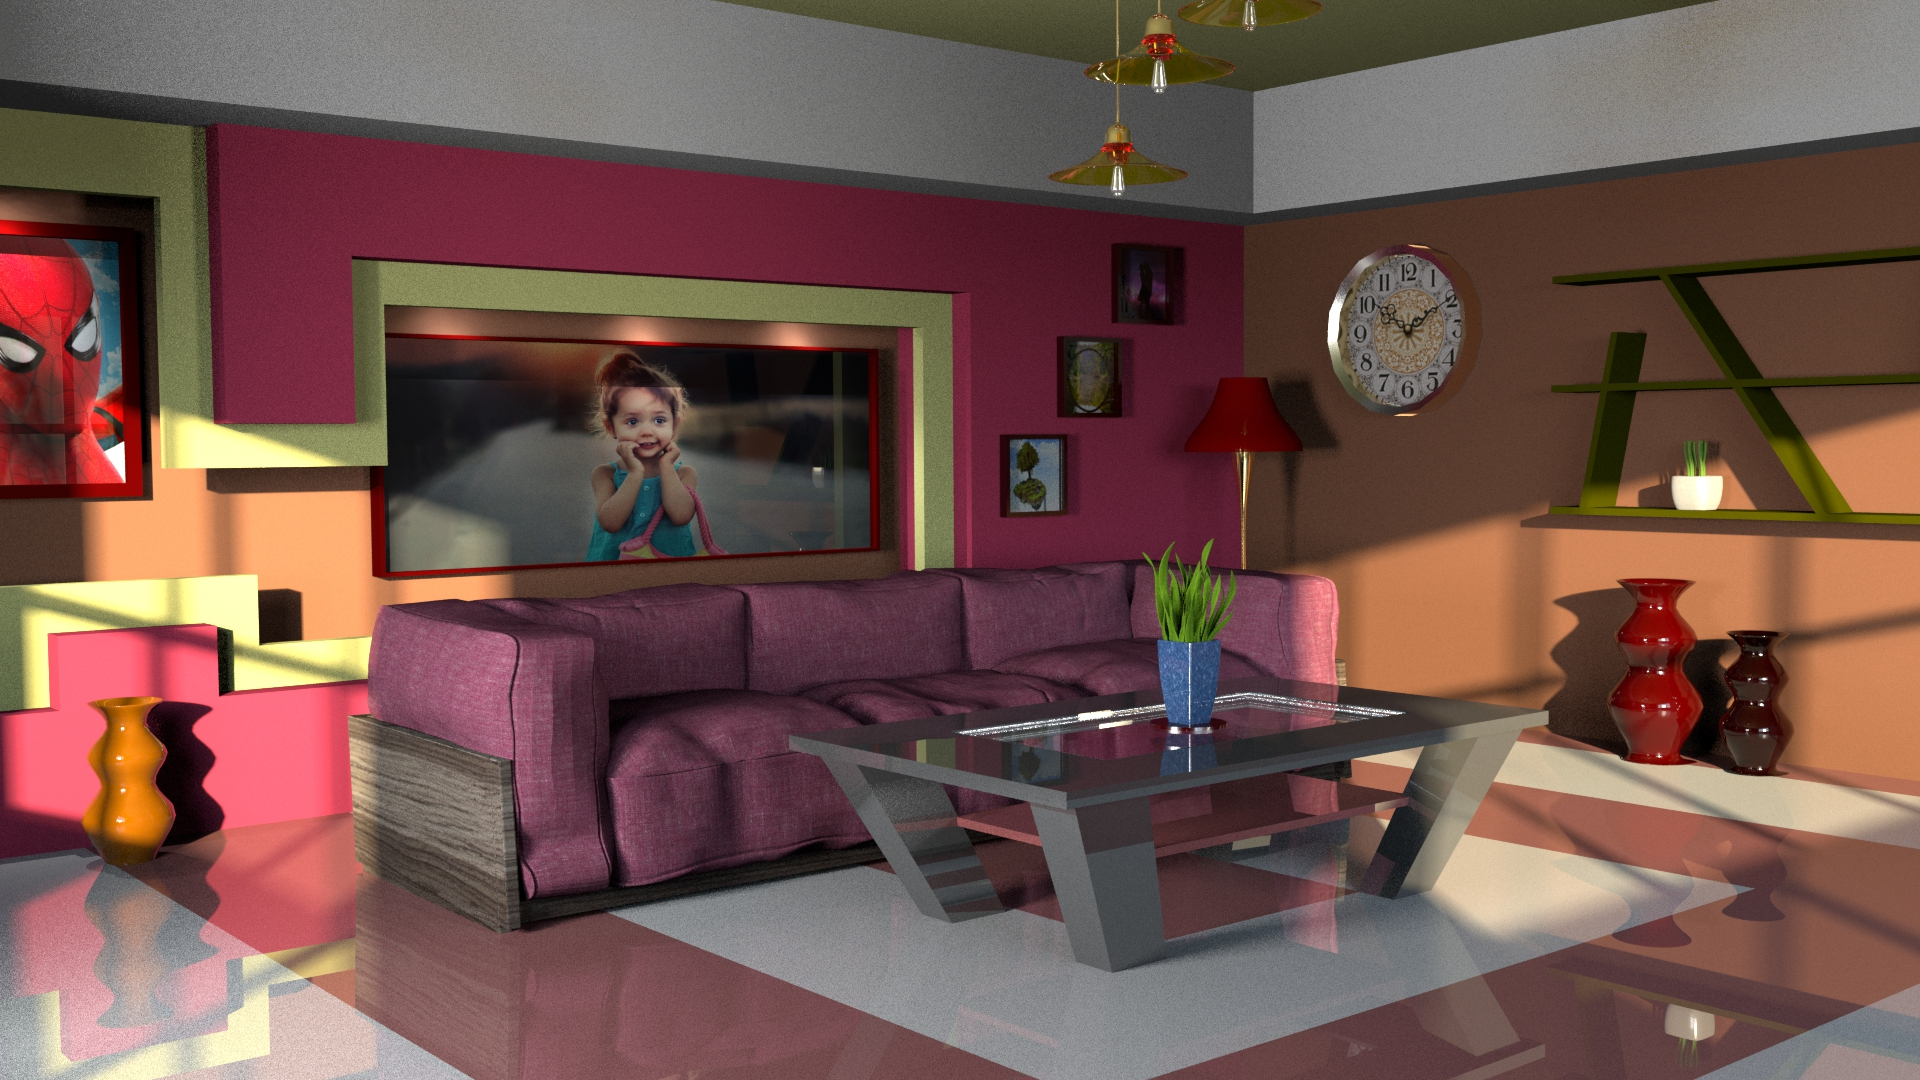 Rohit_interior_modelling_texturing_lighting.jpg